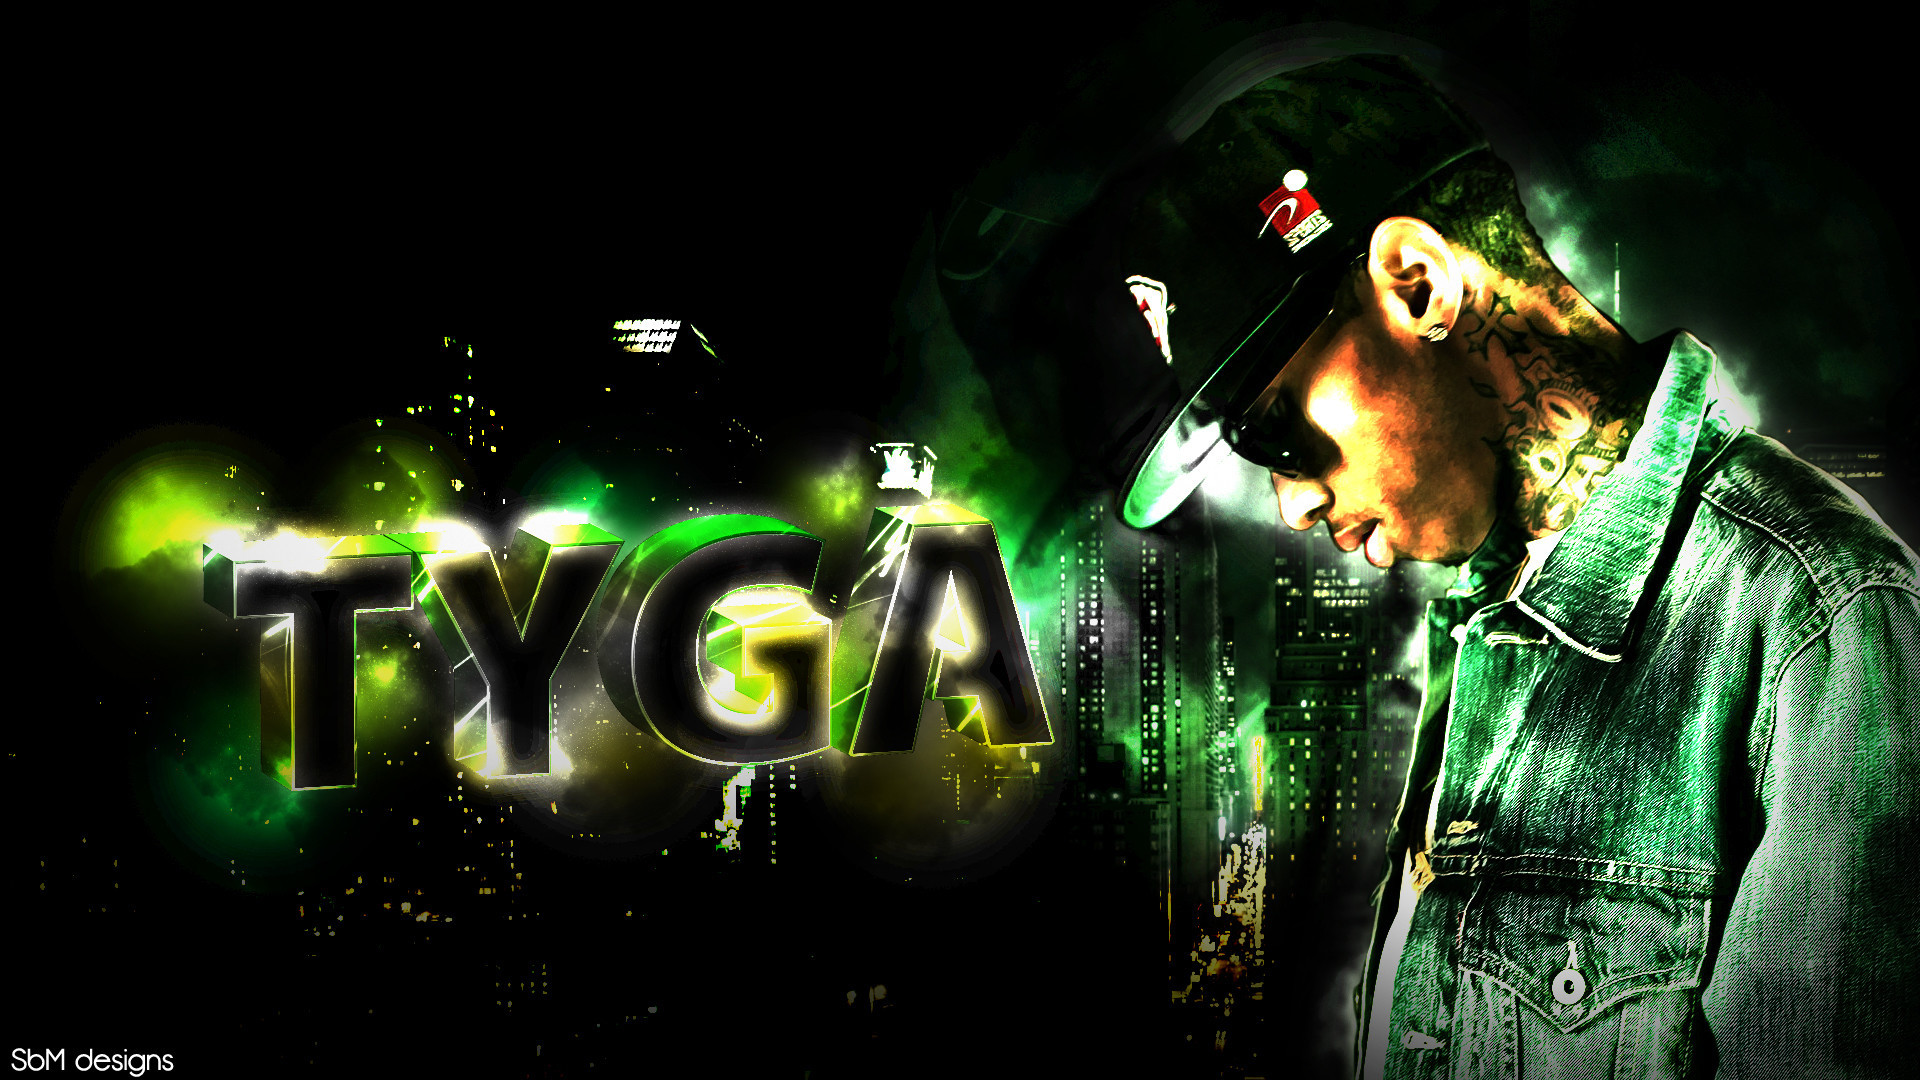 1920x1080  High Definition Wallpapers Tyga Wallpaper Sbm Gns Last Kings Full  1920×1080